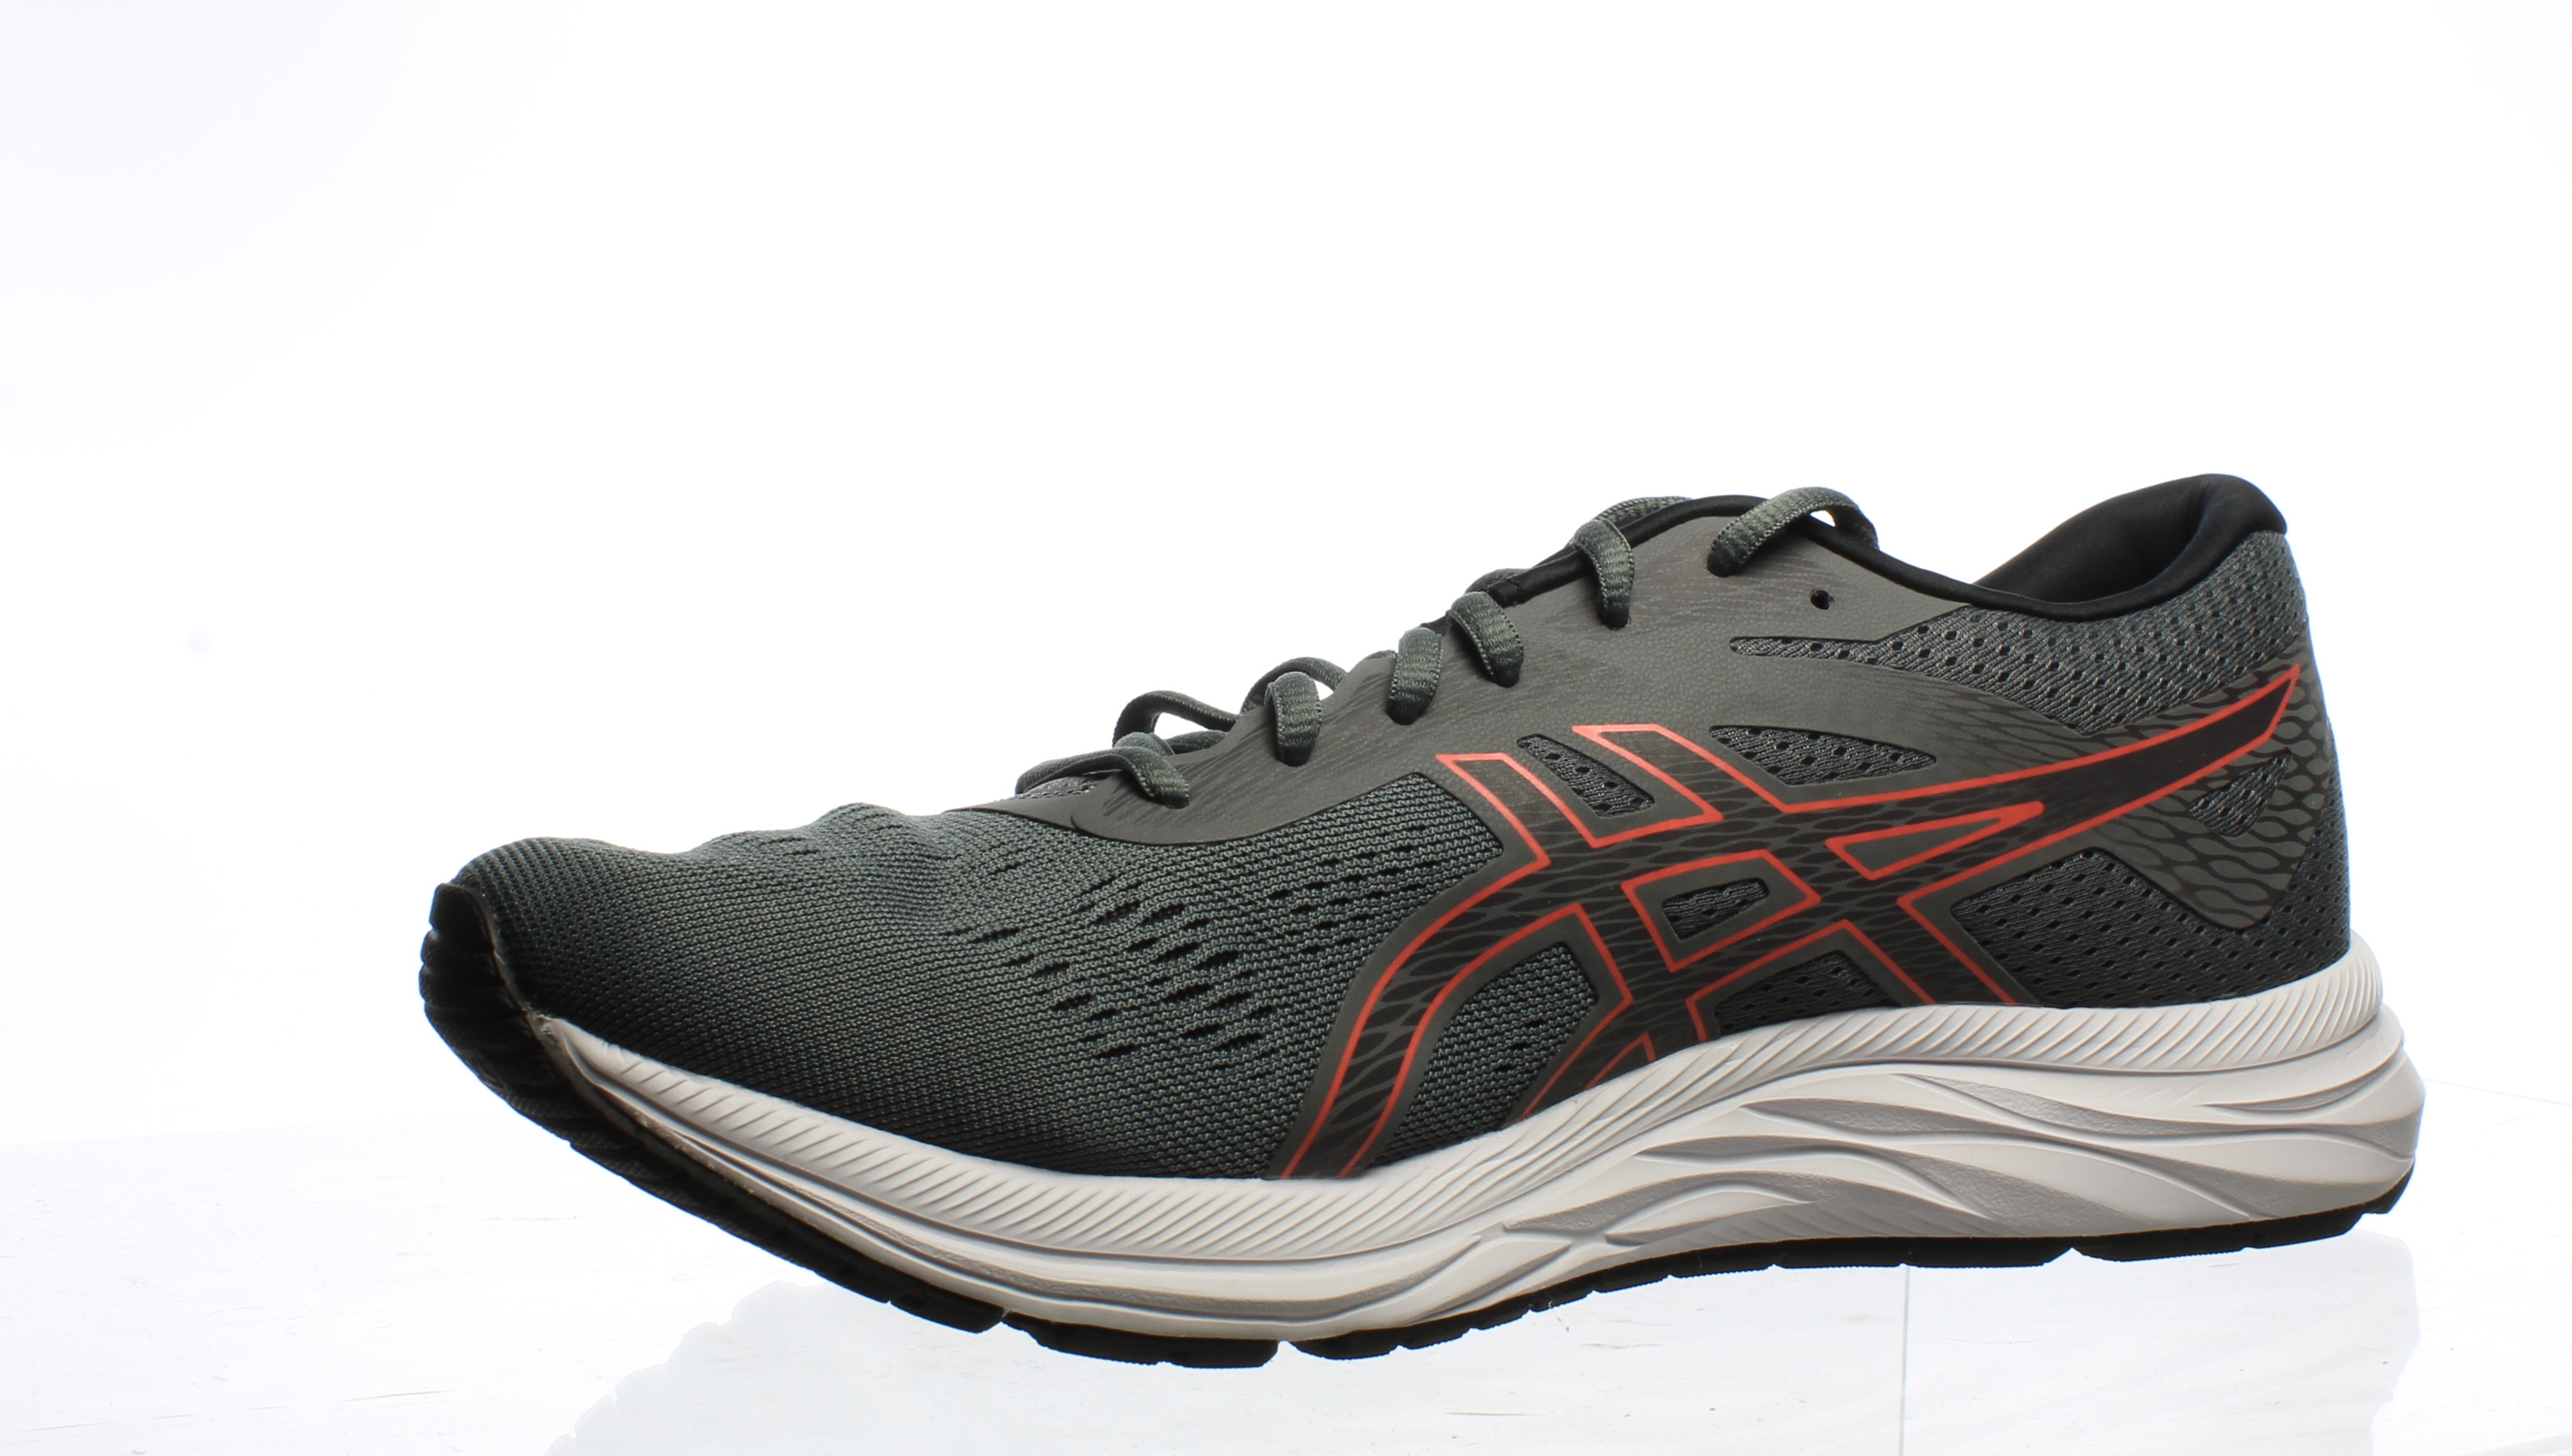 ASICS Womens Gel-Excite 6 Gray Running Shoes Size 12 (Wide) (1034298)  eBay